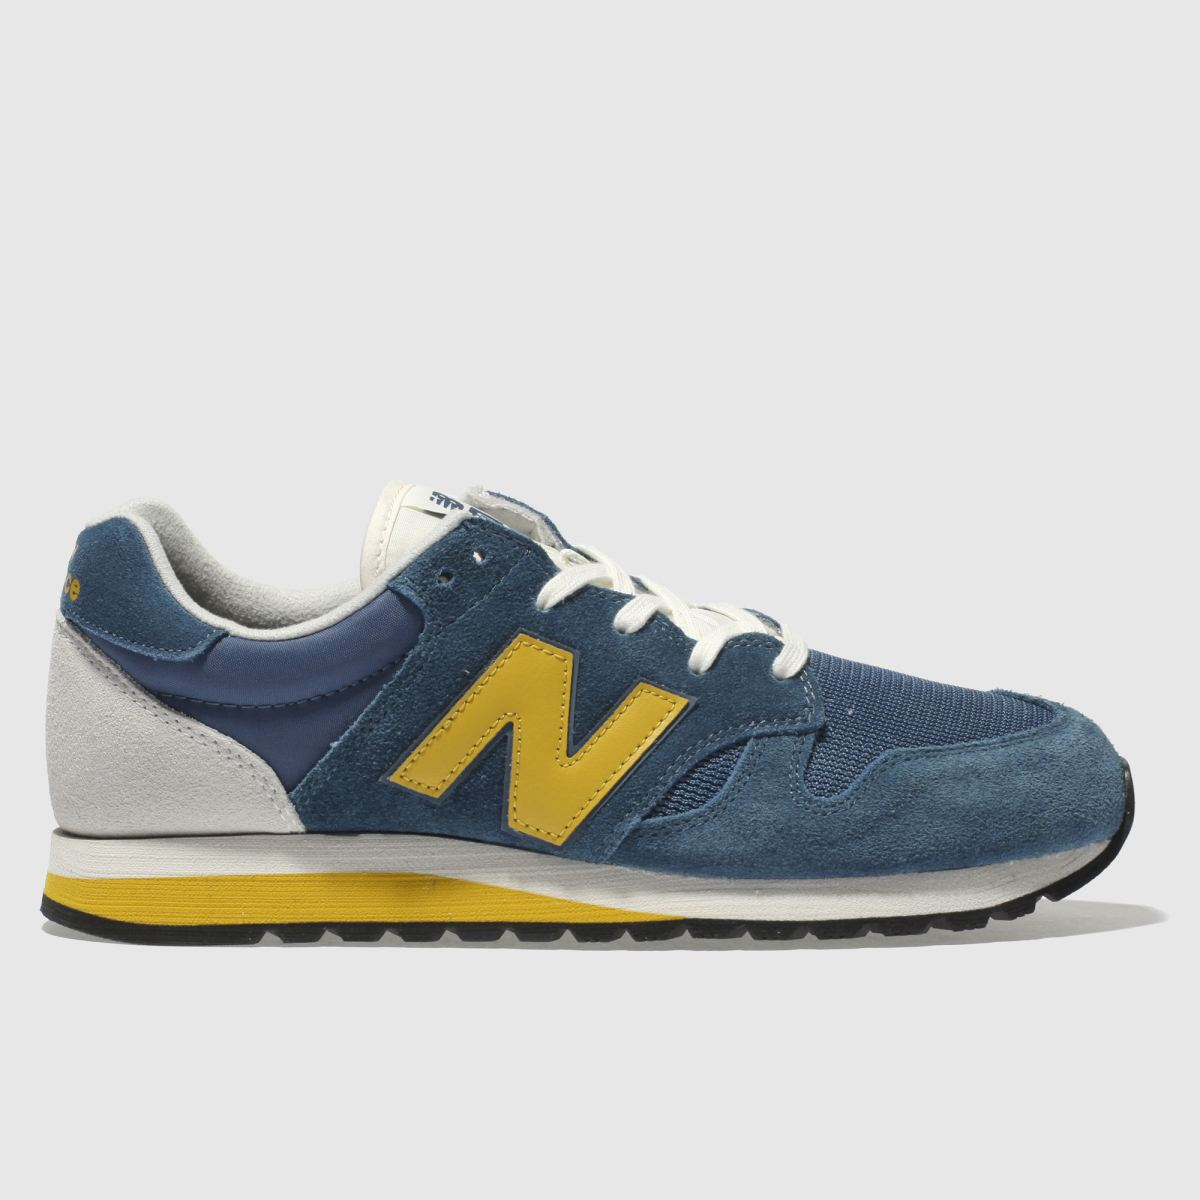 New Balance Navy 520 Trainers